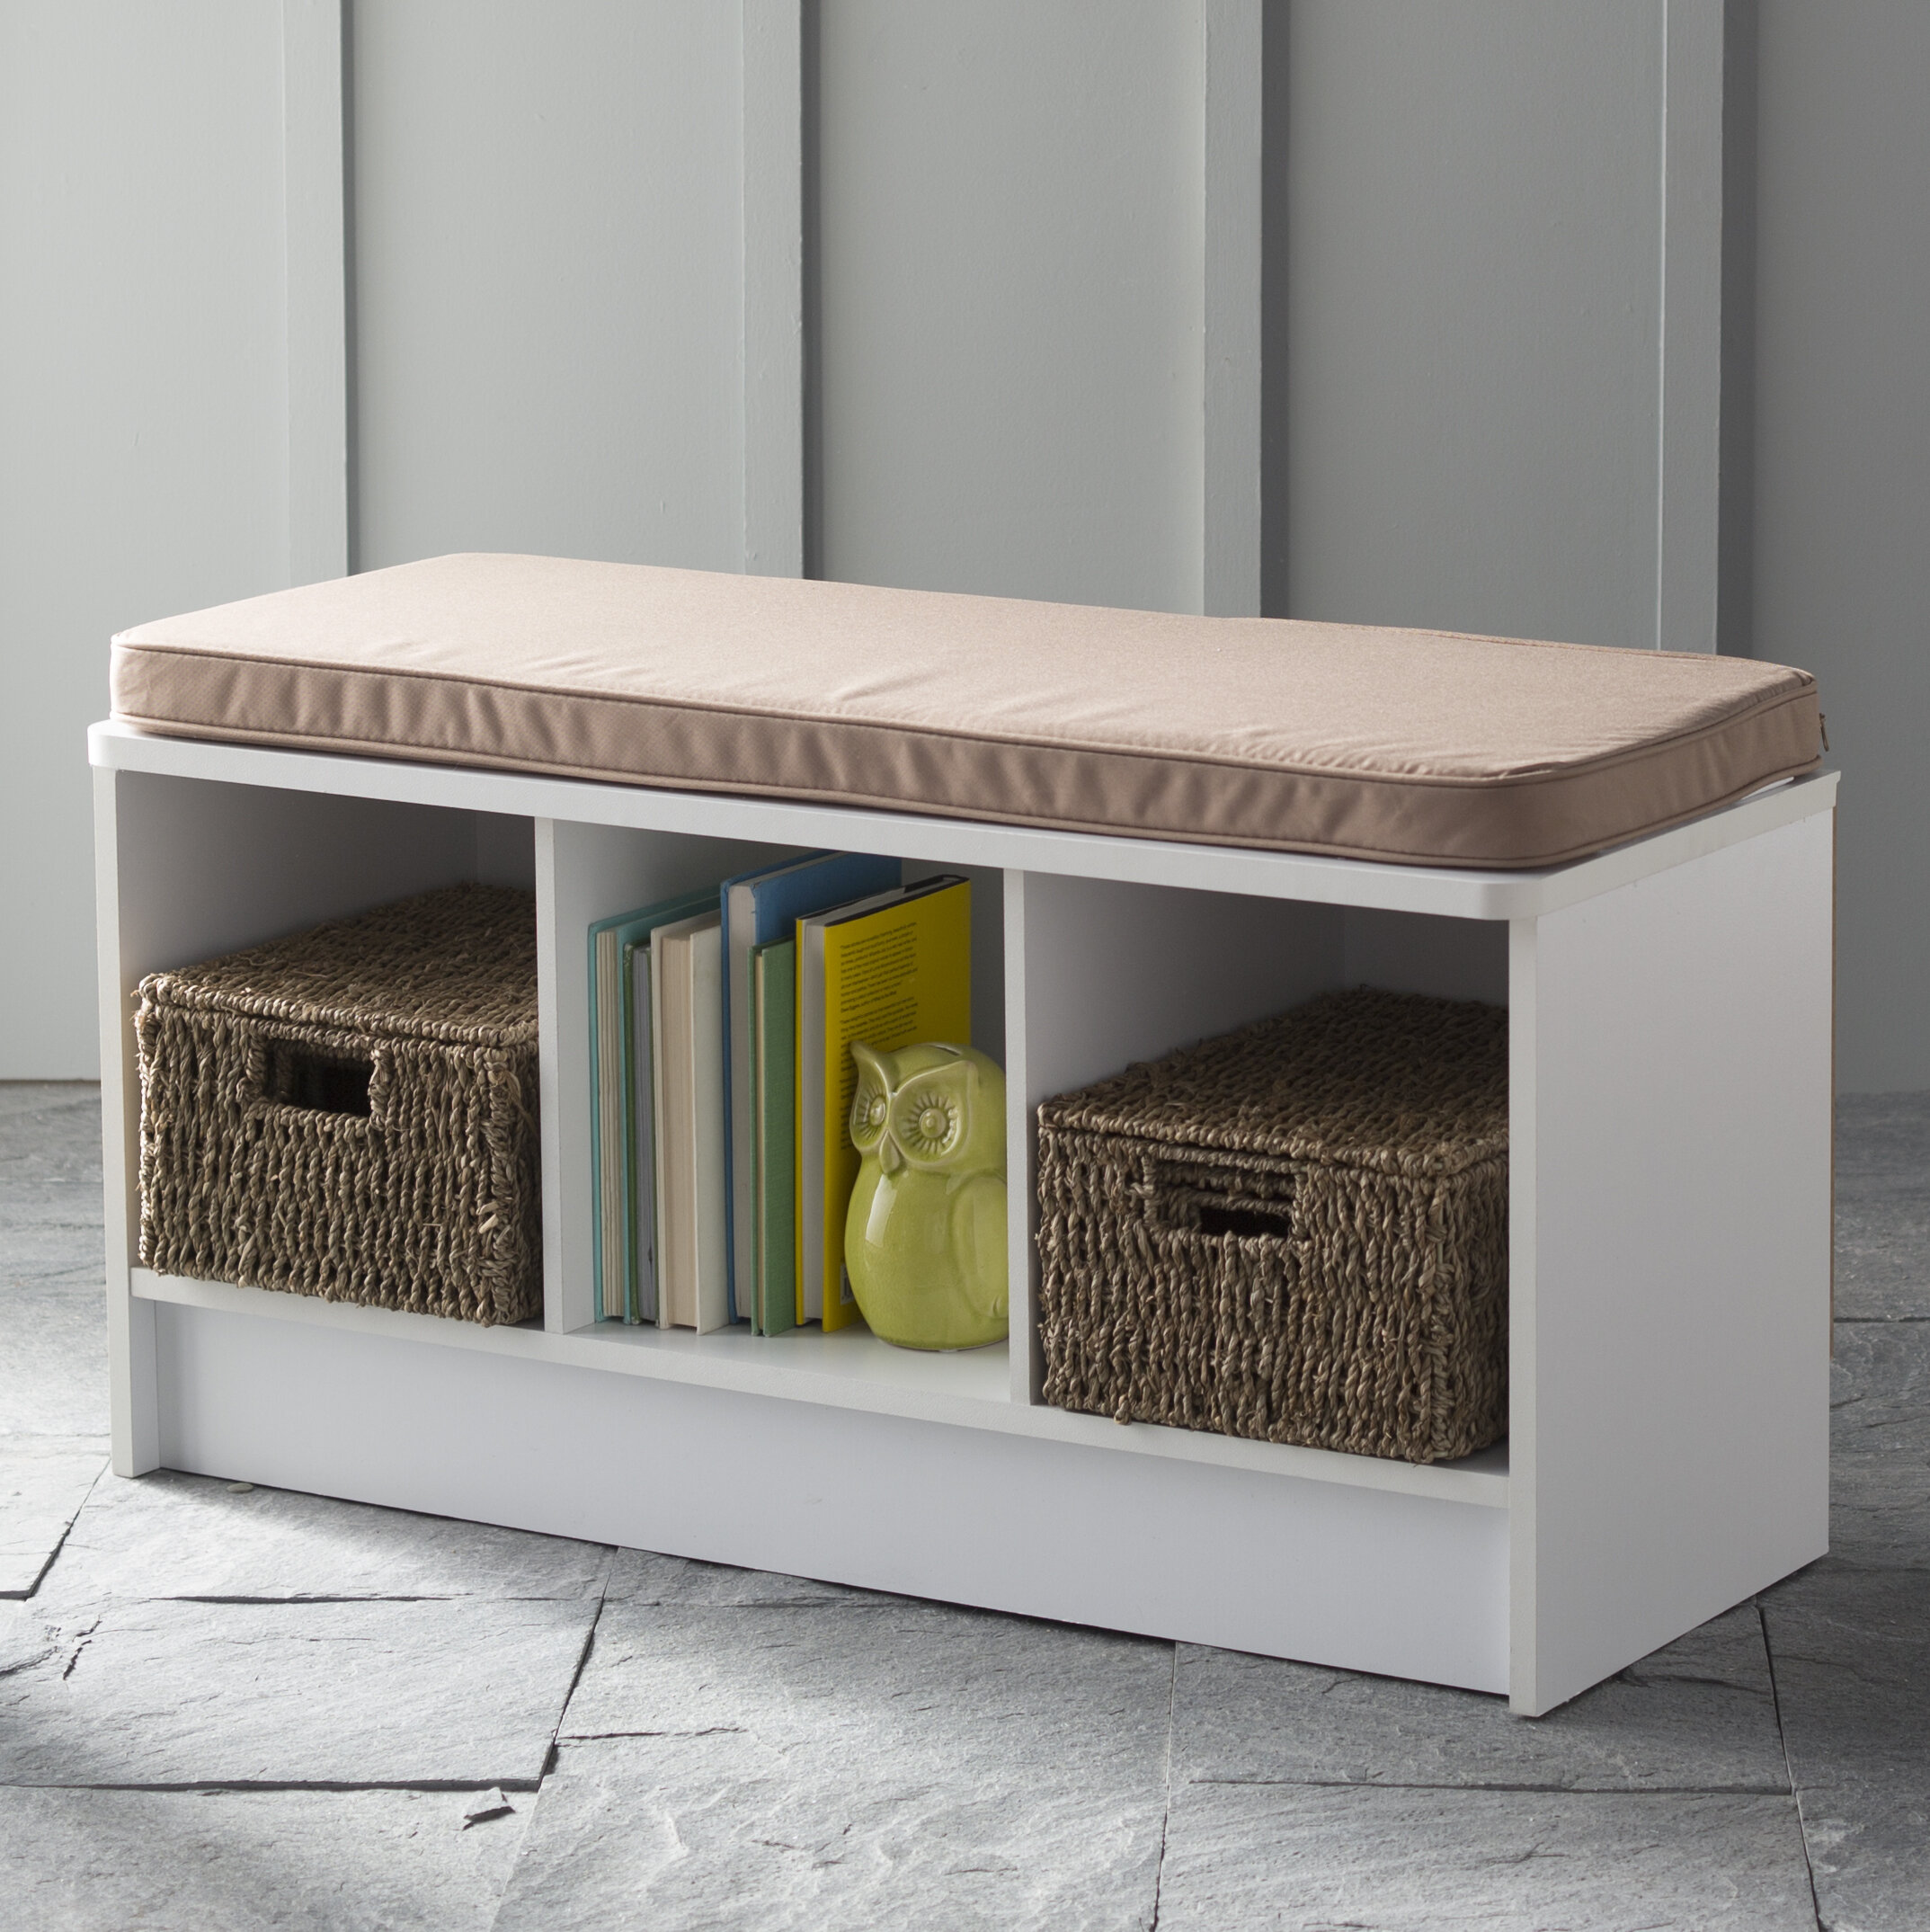 storage cube this stone shelf longerversion little unit nine your bench available also abbeville with in is products co trading our team unitand a up great